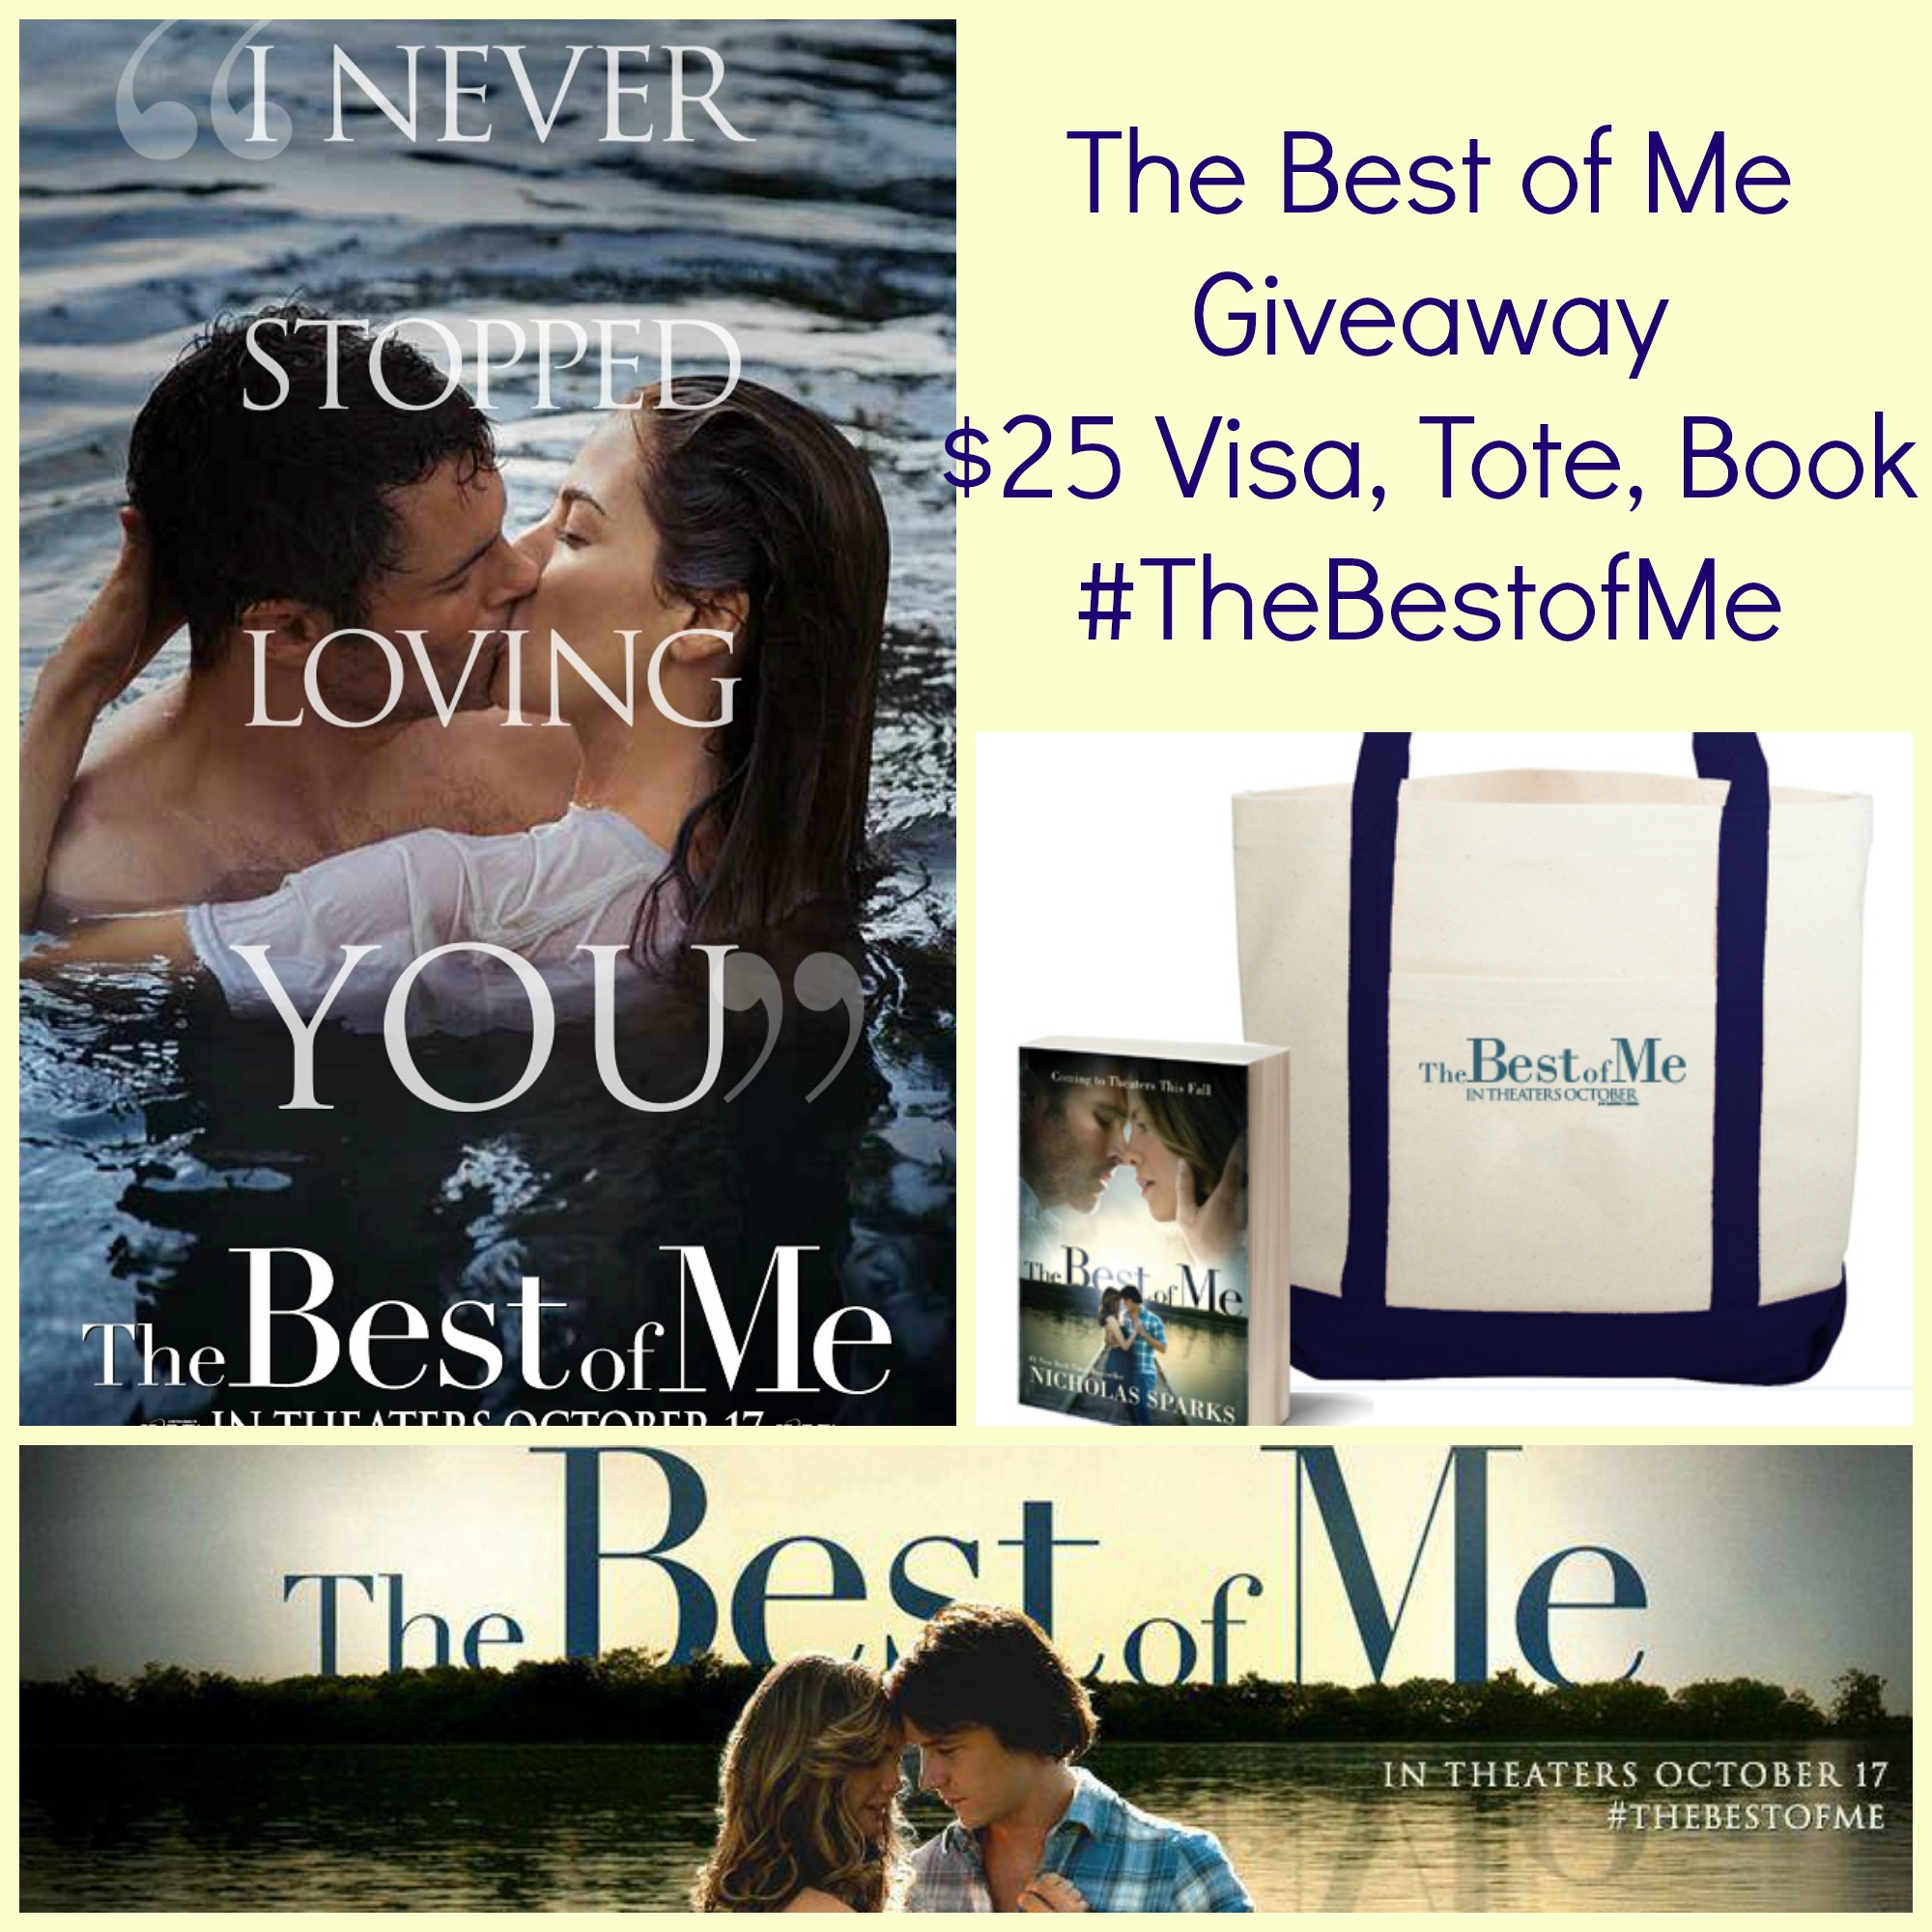 The Best of Me Giveaway – #TheBestofMe